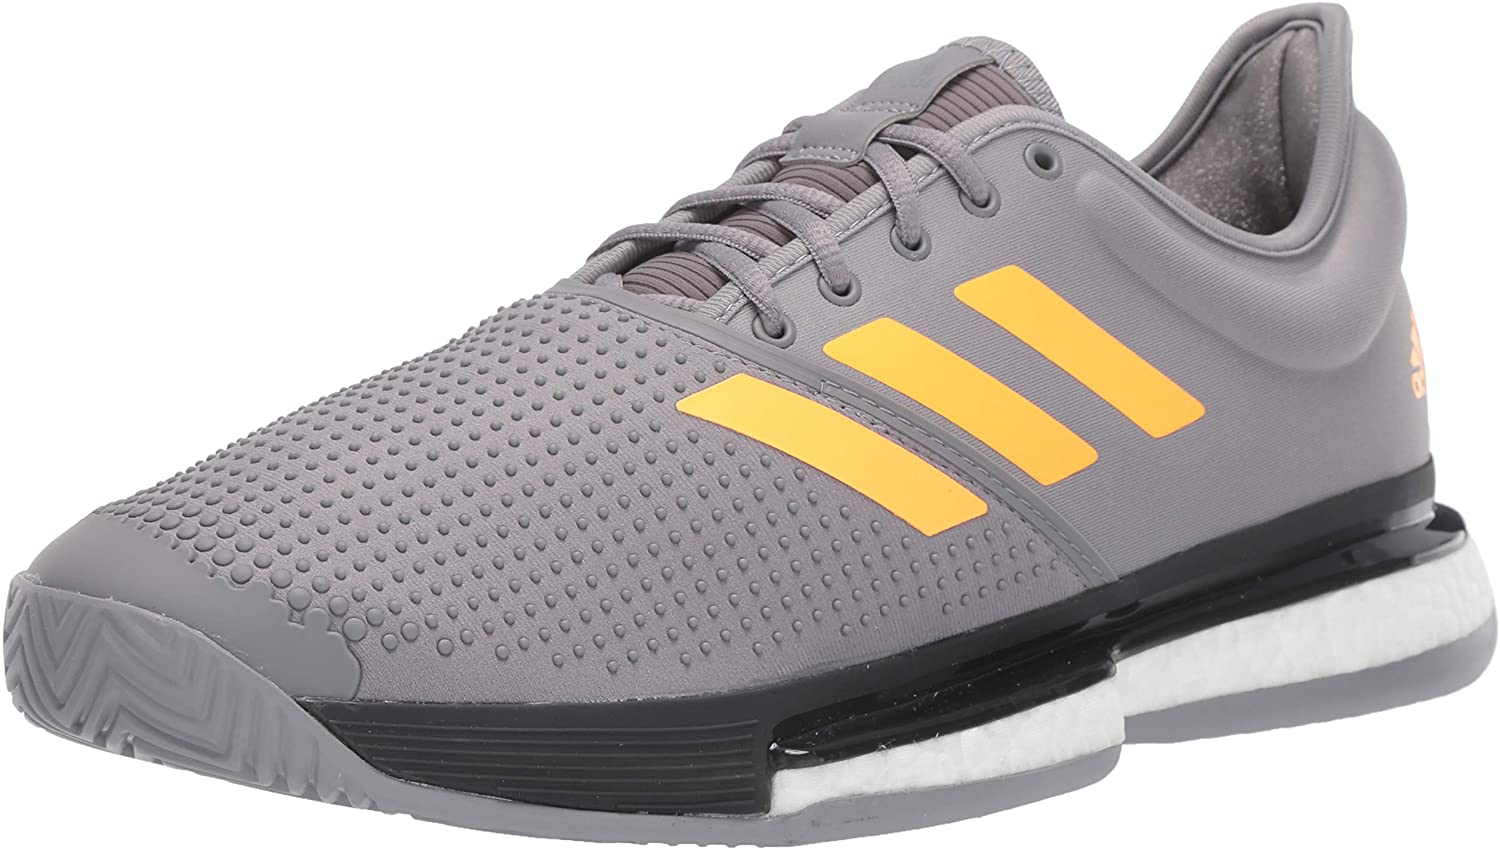 adidas Men's Solecourt Boost M Tennis Shoe